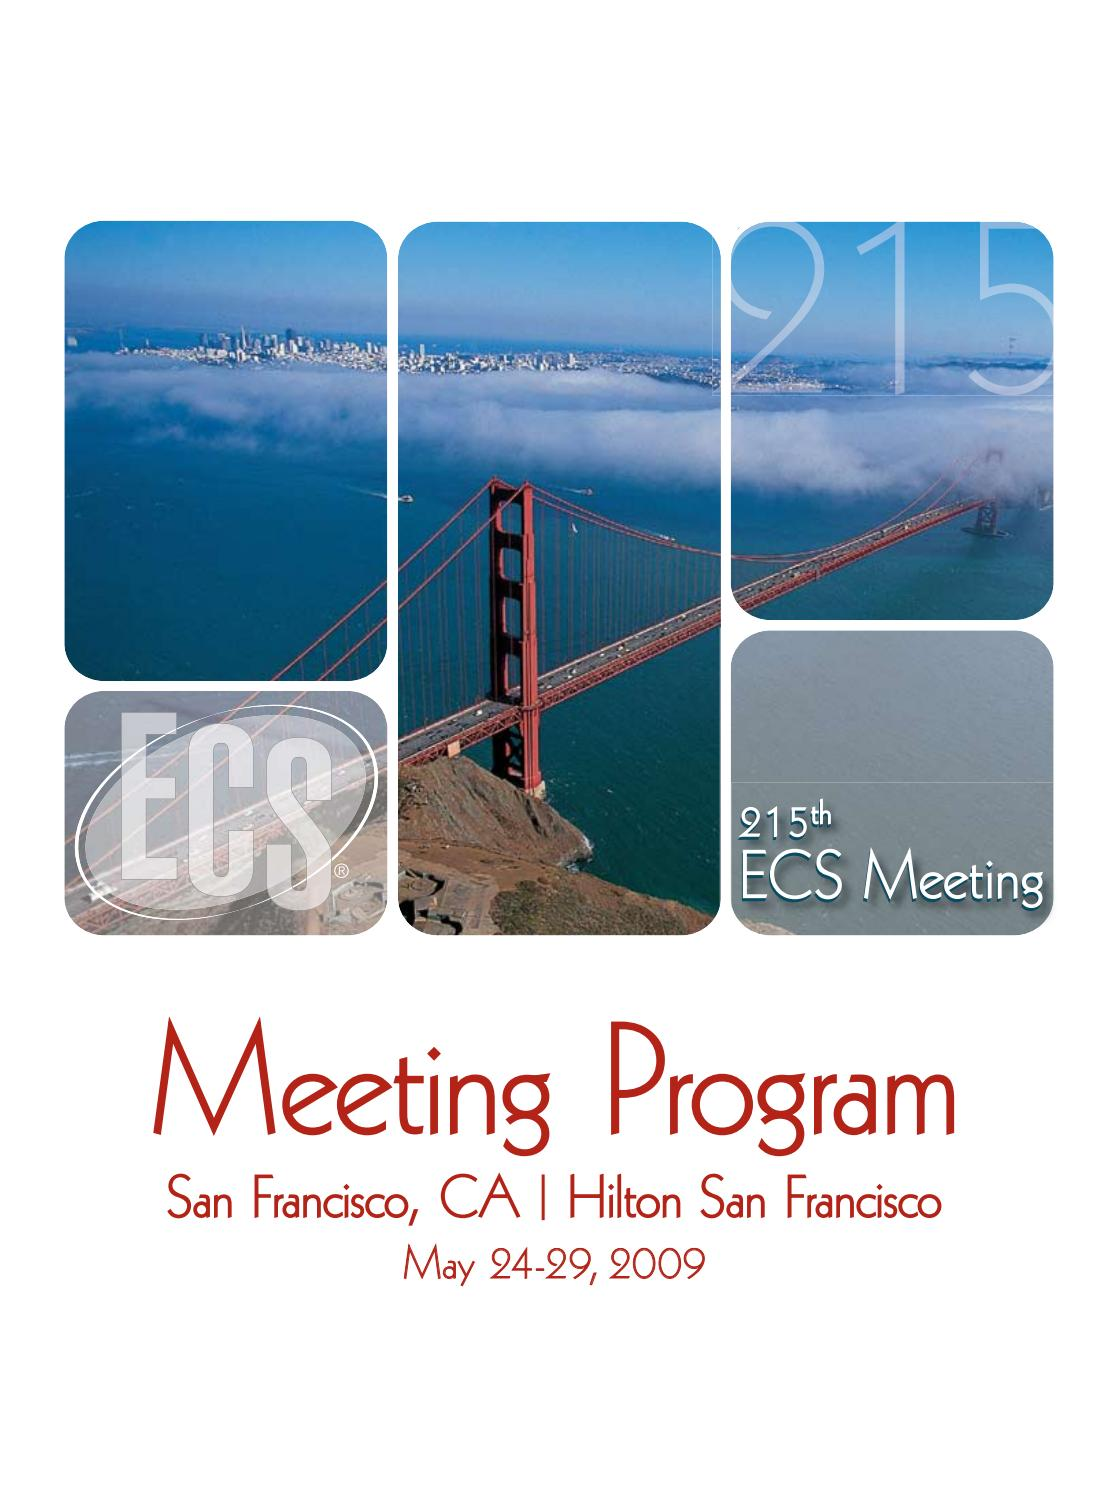 227th Ecs Meeting Program By The Electrochemical Society 1950 Chrysler Imperial Wiring Schematics Issuu